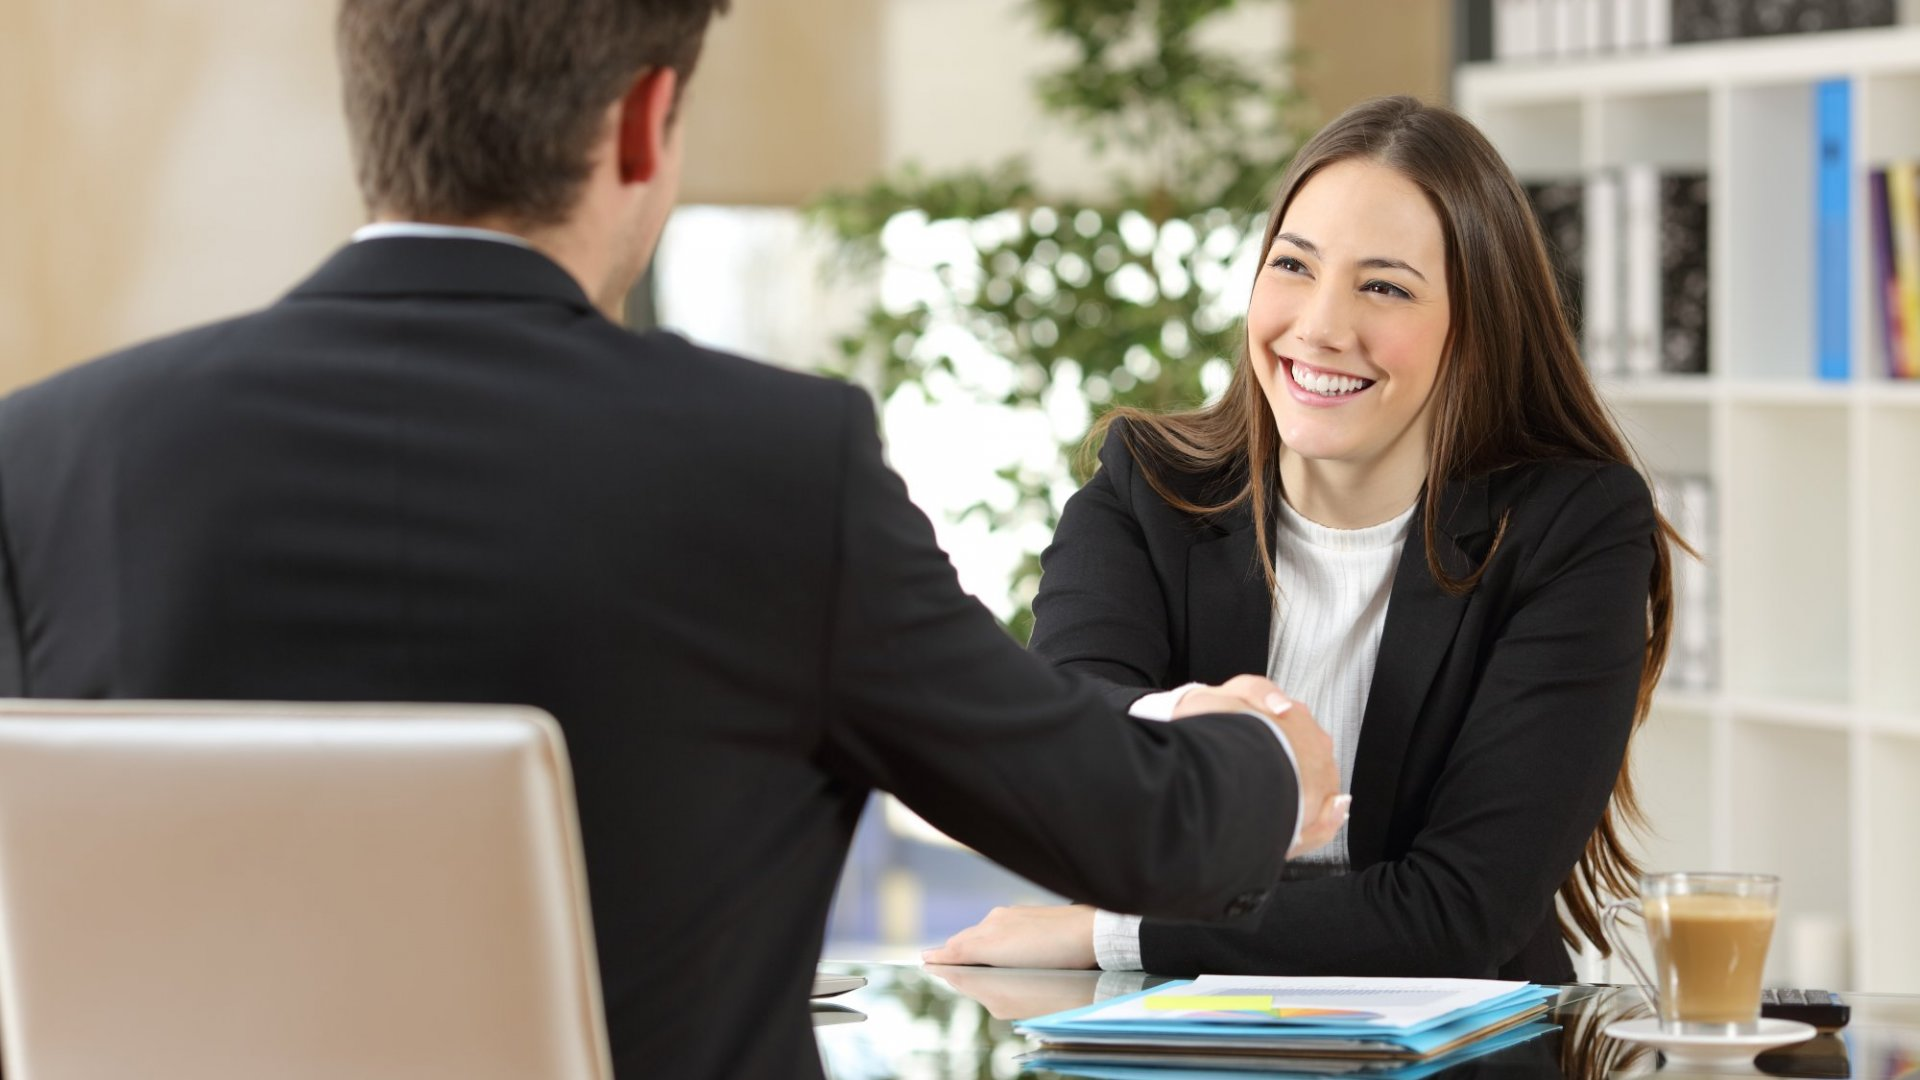 Smart interns do these 4 things to increase their chances of getting a job offer.